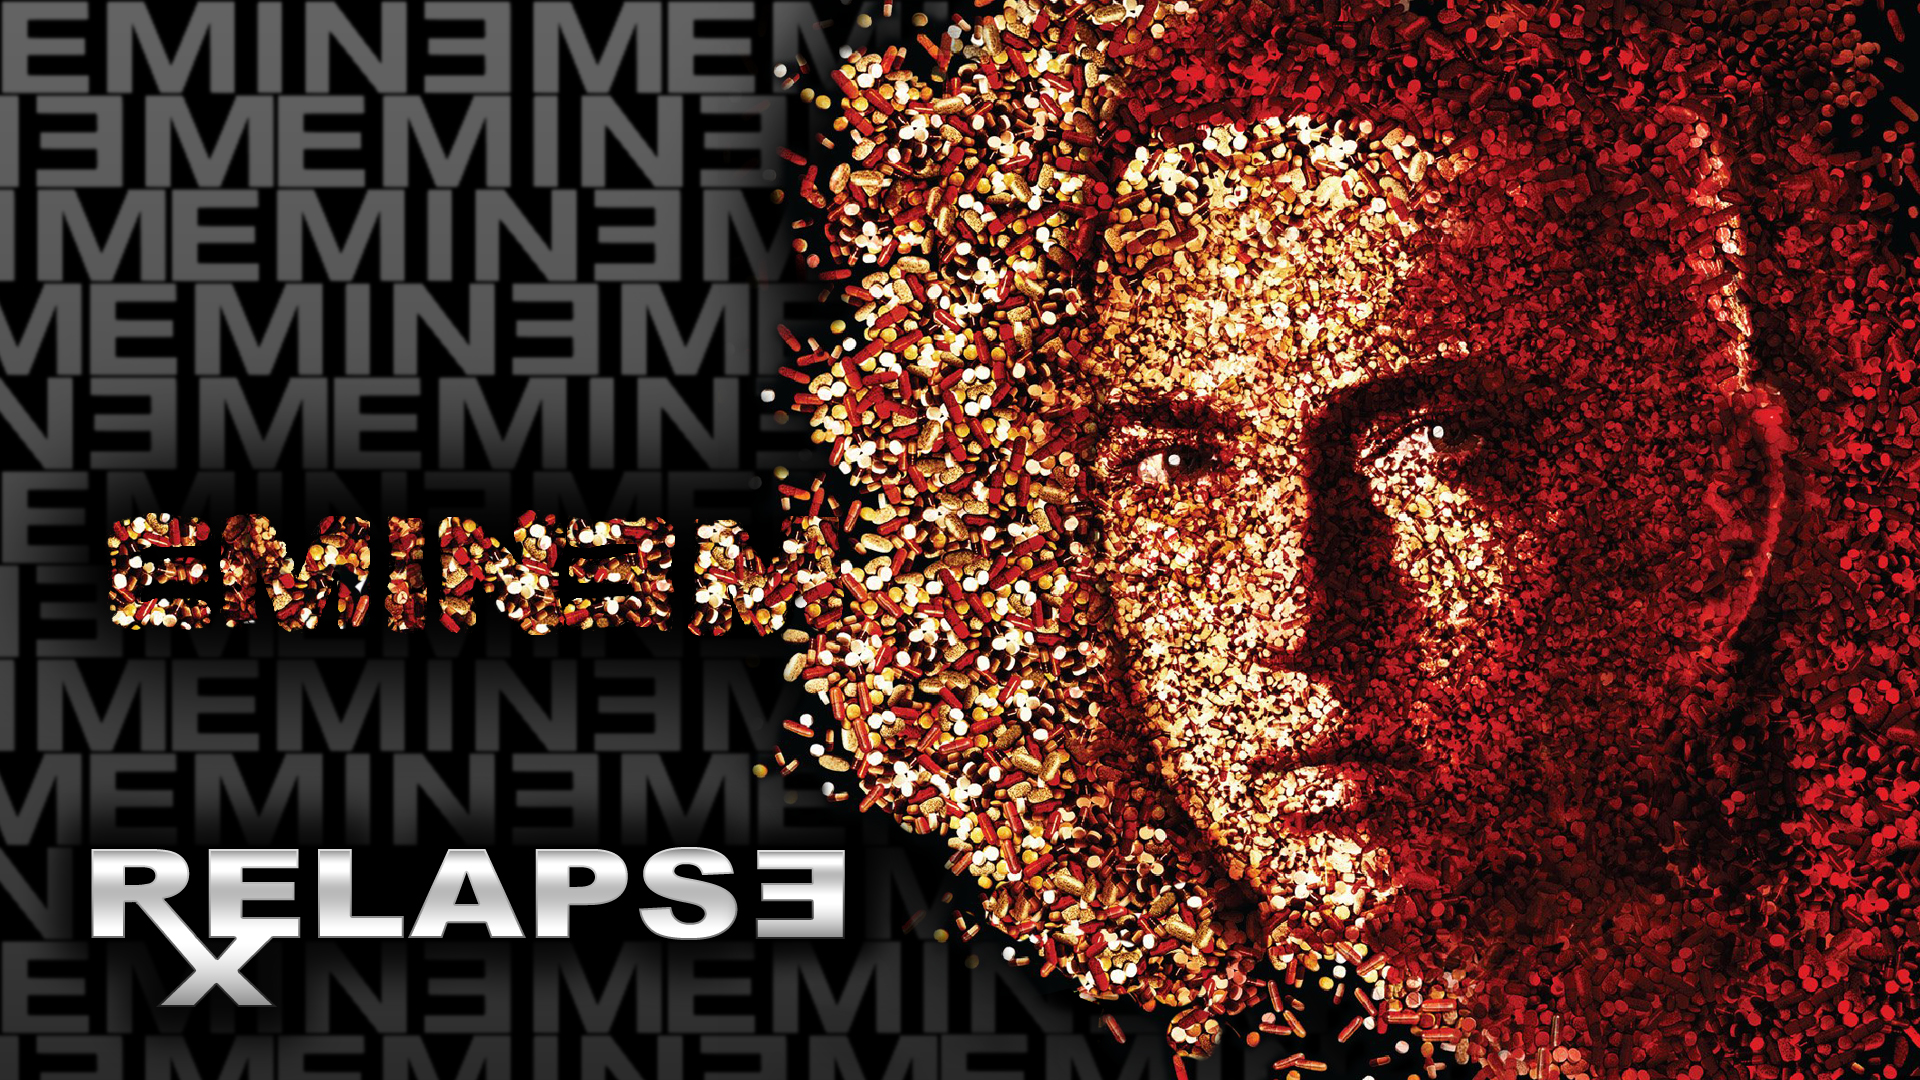 Eminem Relapse Rap Wallpapers 1920x1080